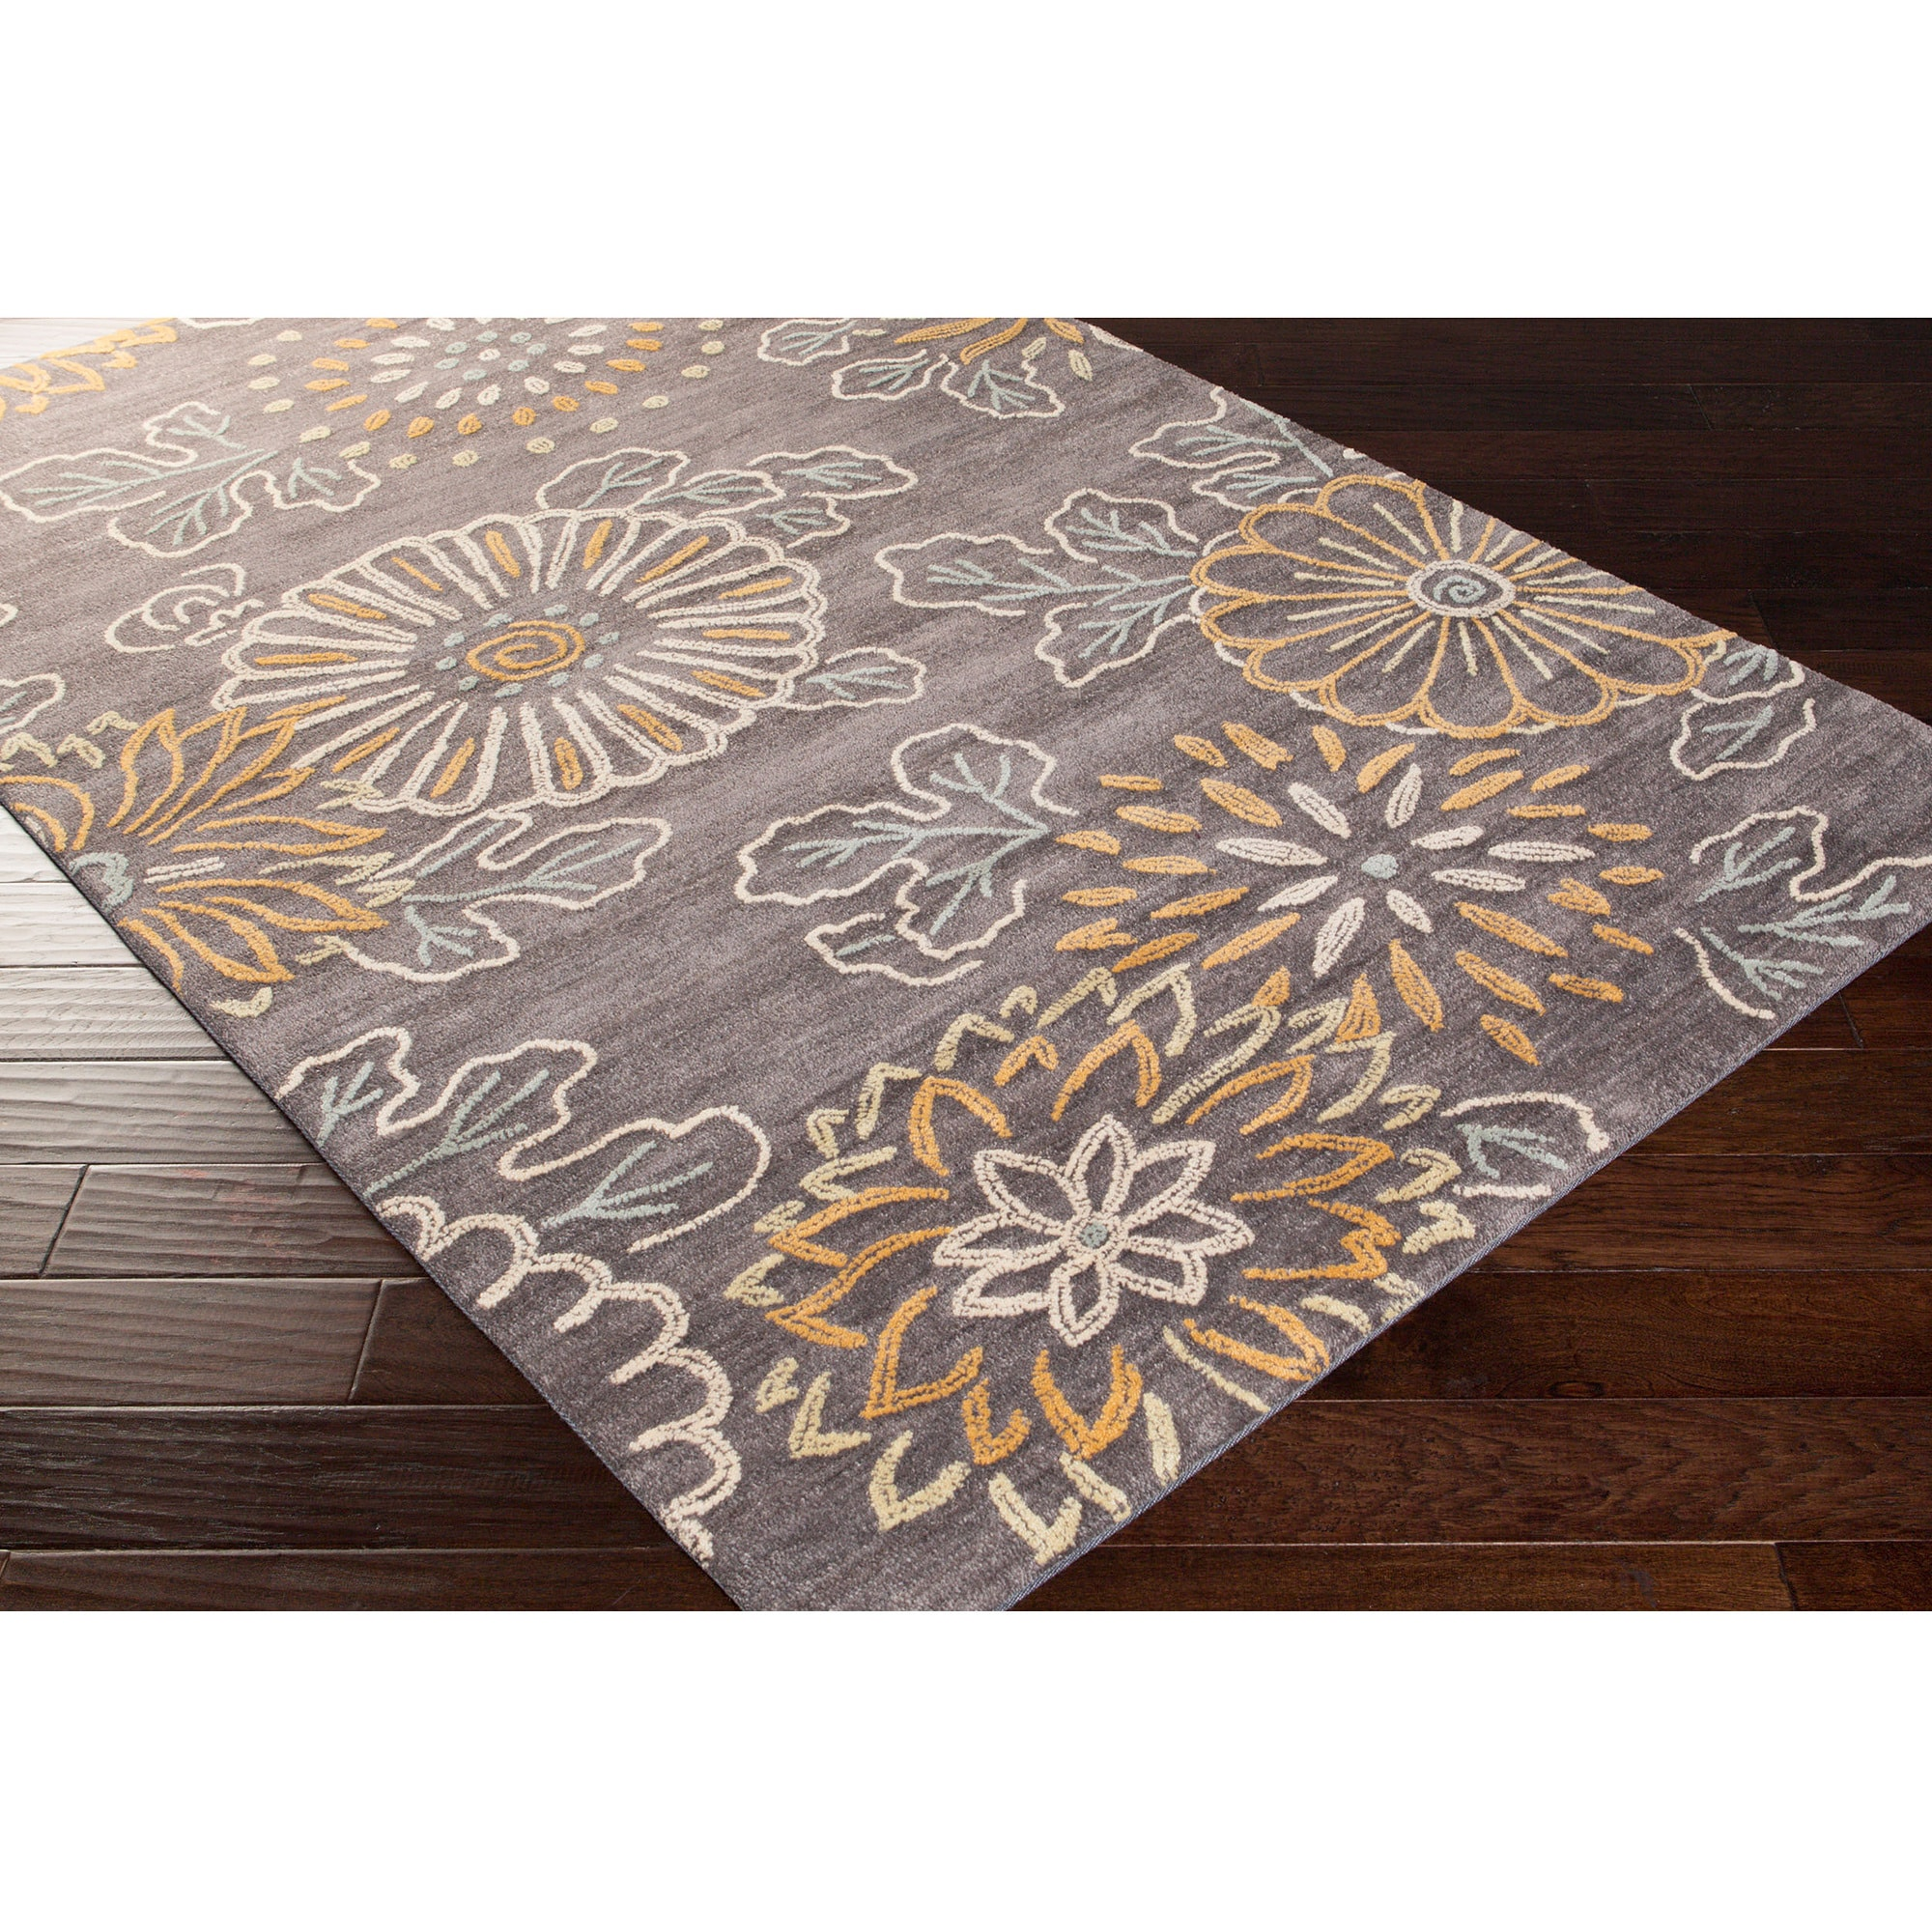 Hand-tufted Gisborne Transitional Floral Area Rug (8' x 1...